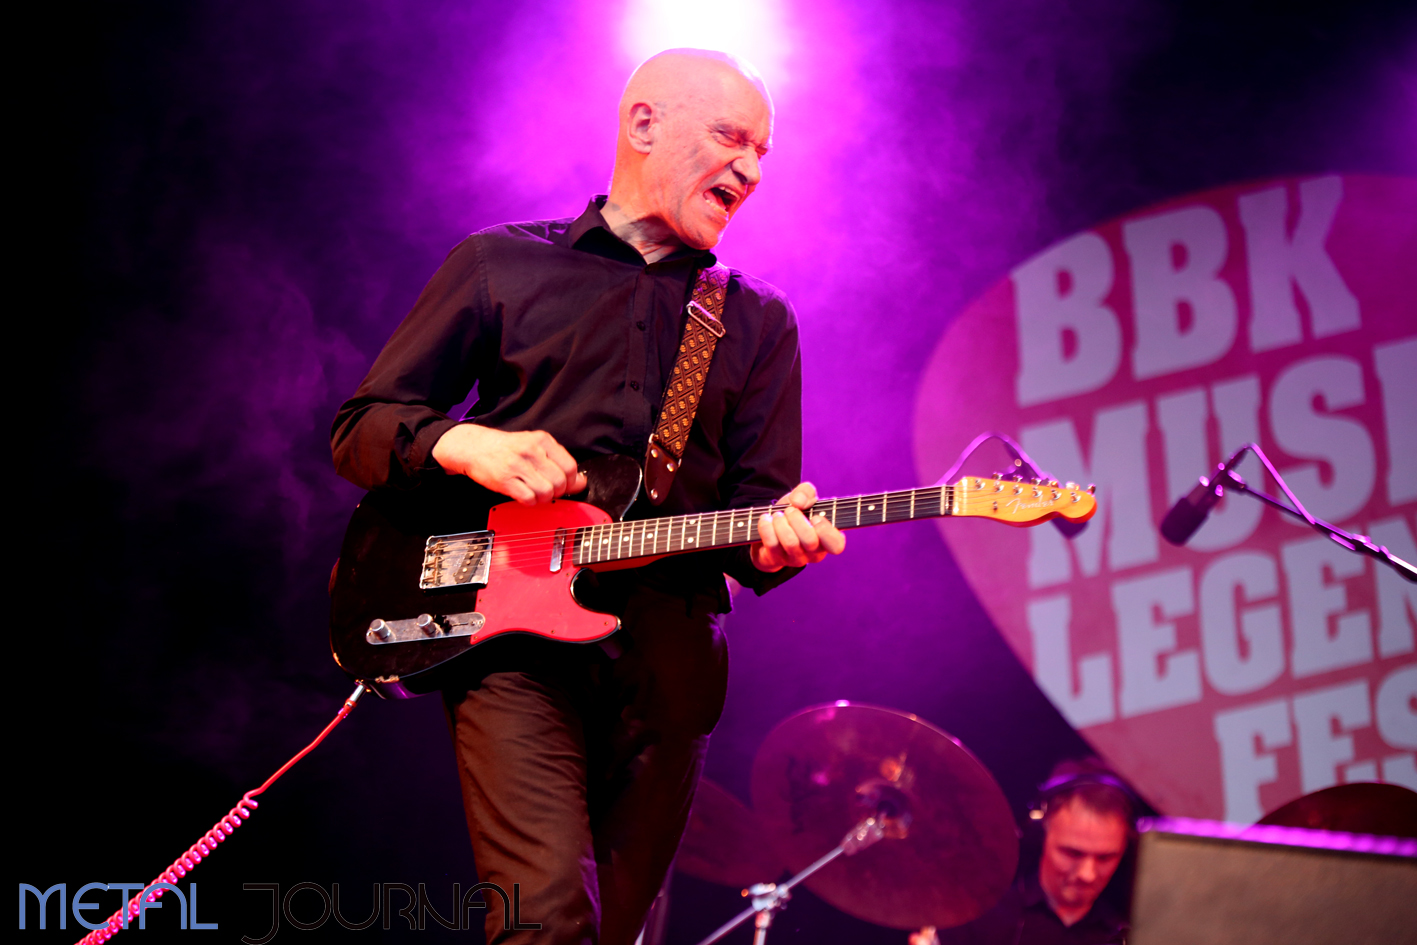 wilko johnson - bbk legends 2018 pic 1